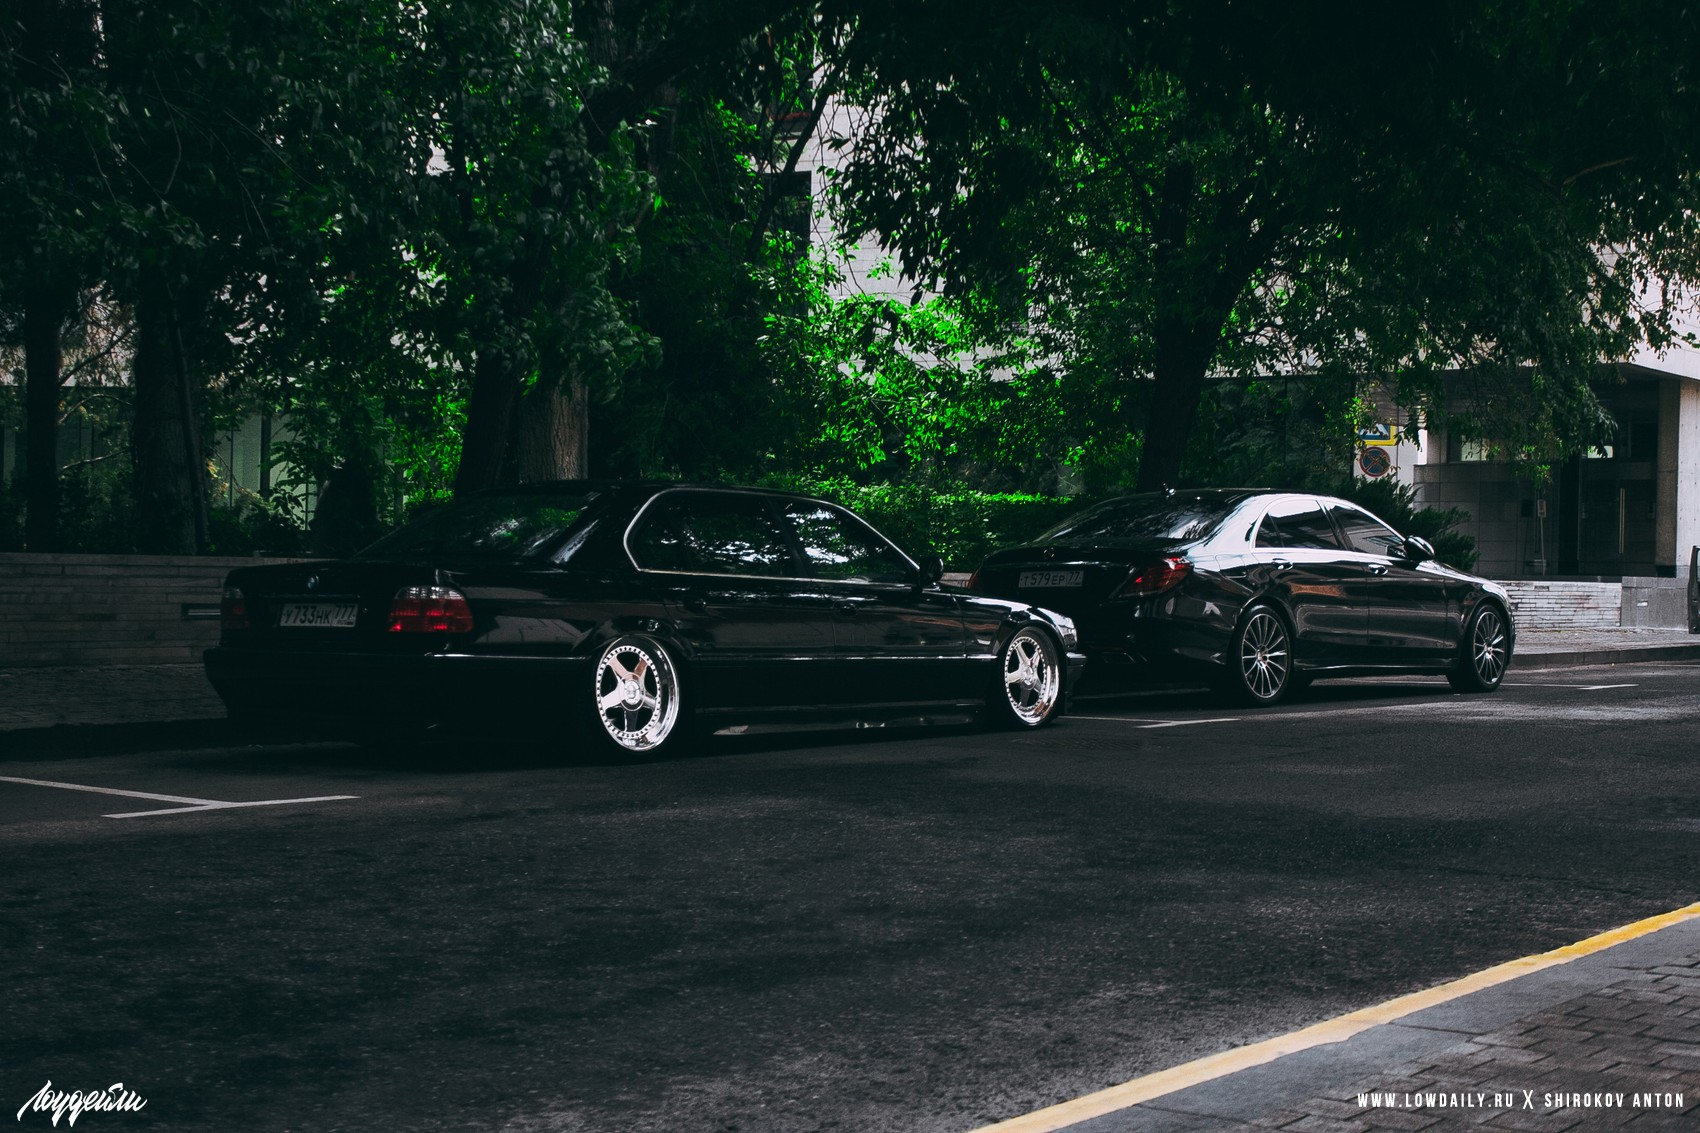 BMW E38 Lowdaily _MG_7101